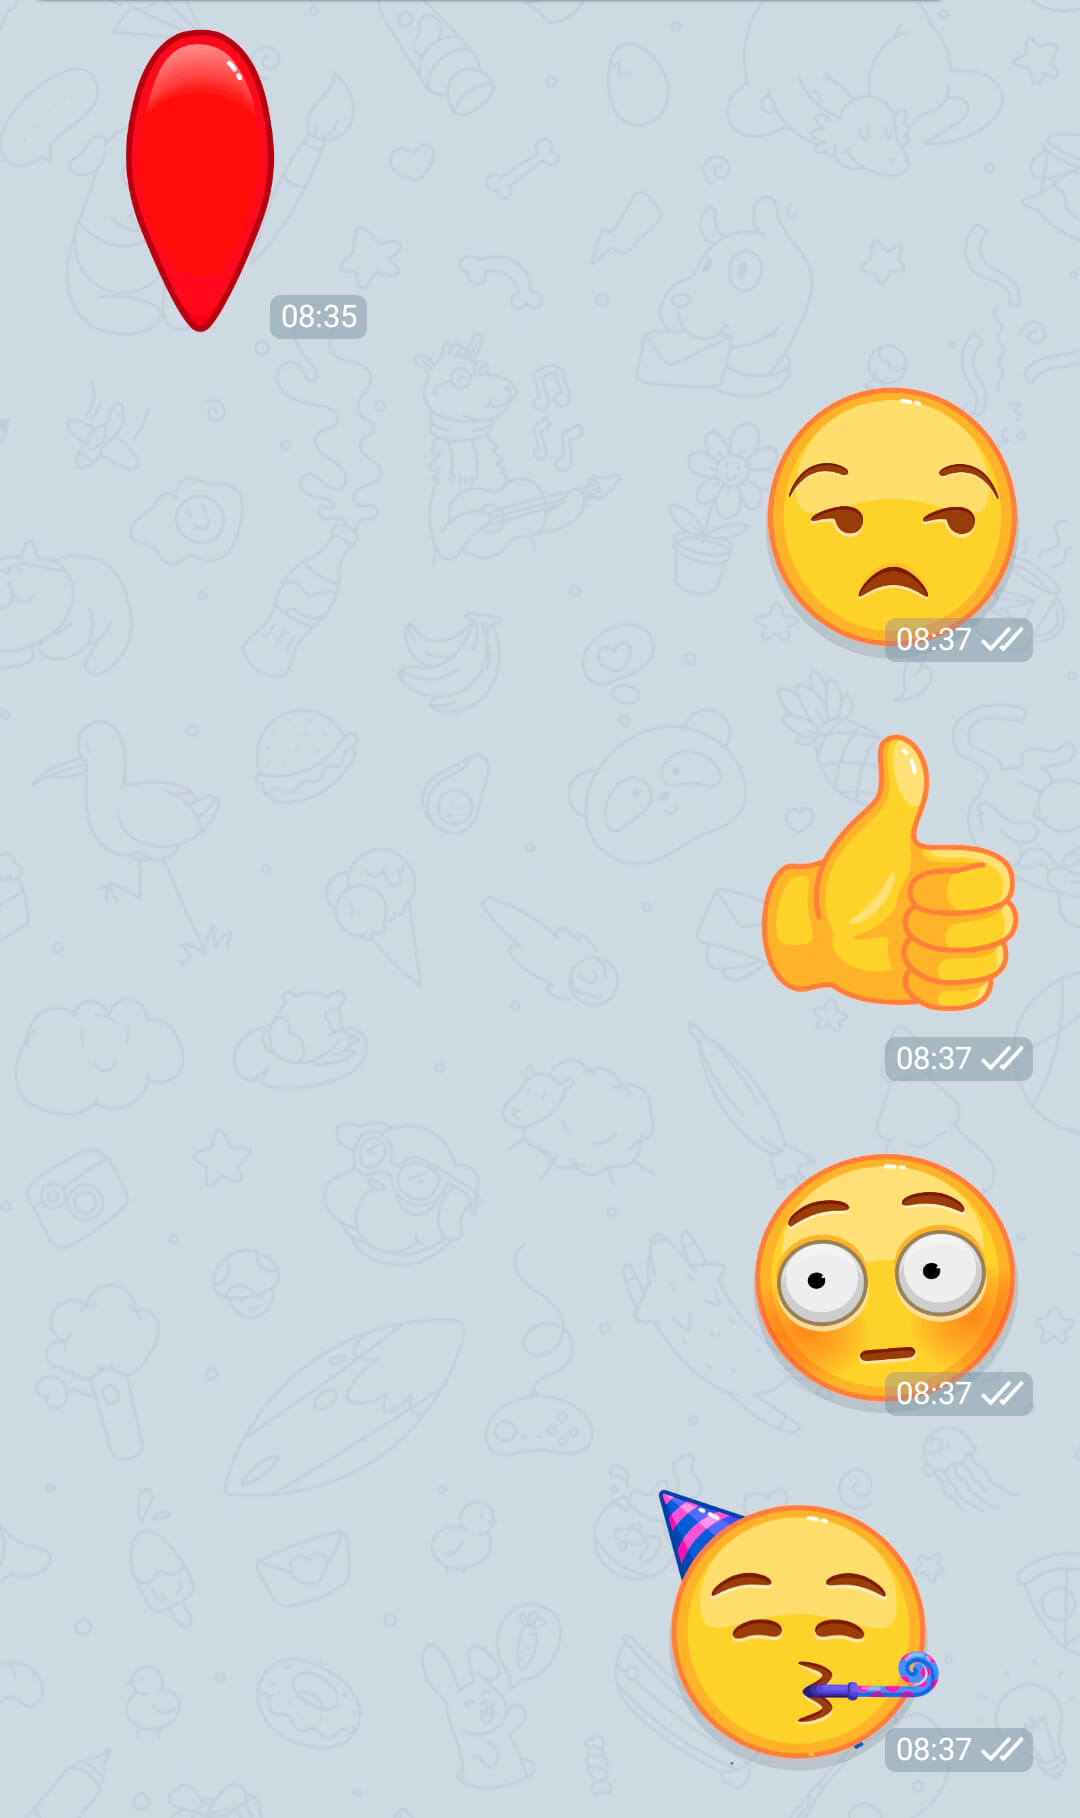 silent chats, animated emojis, slow chat ... 1